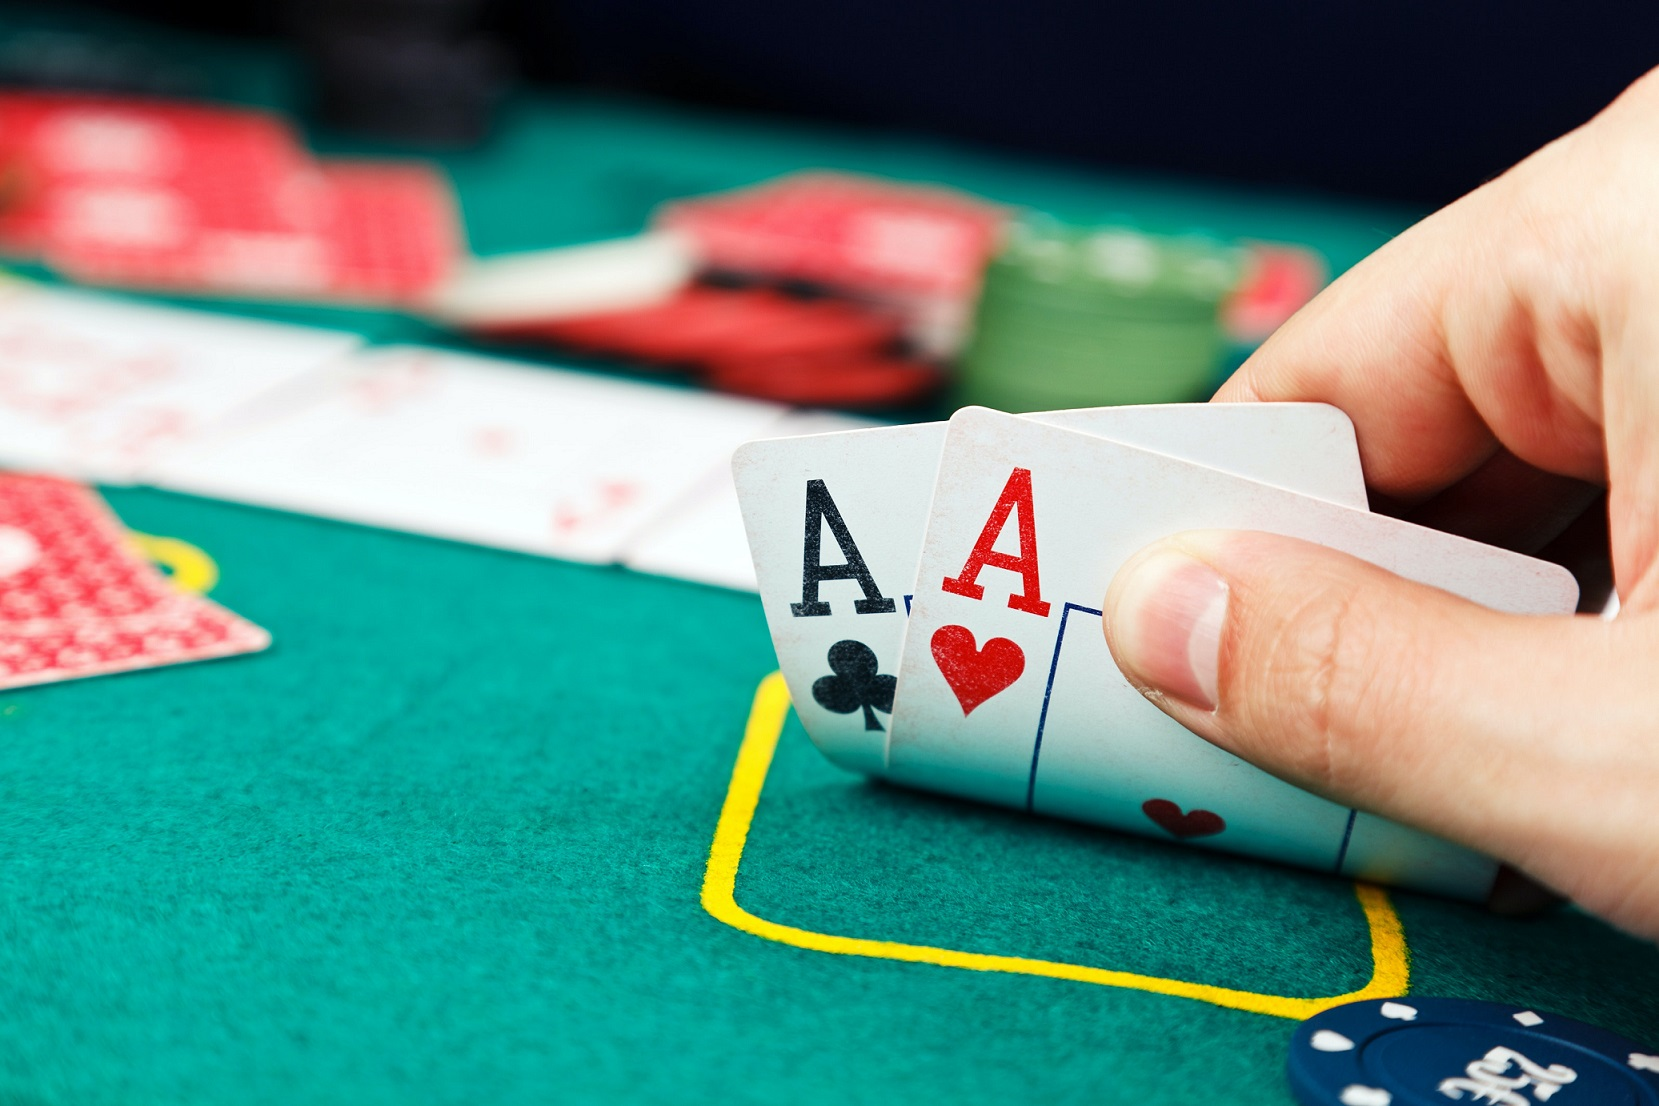 The Online Gambling Lure